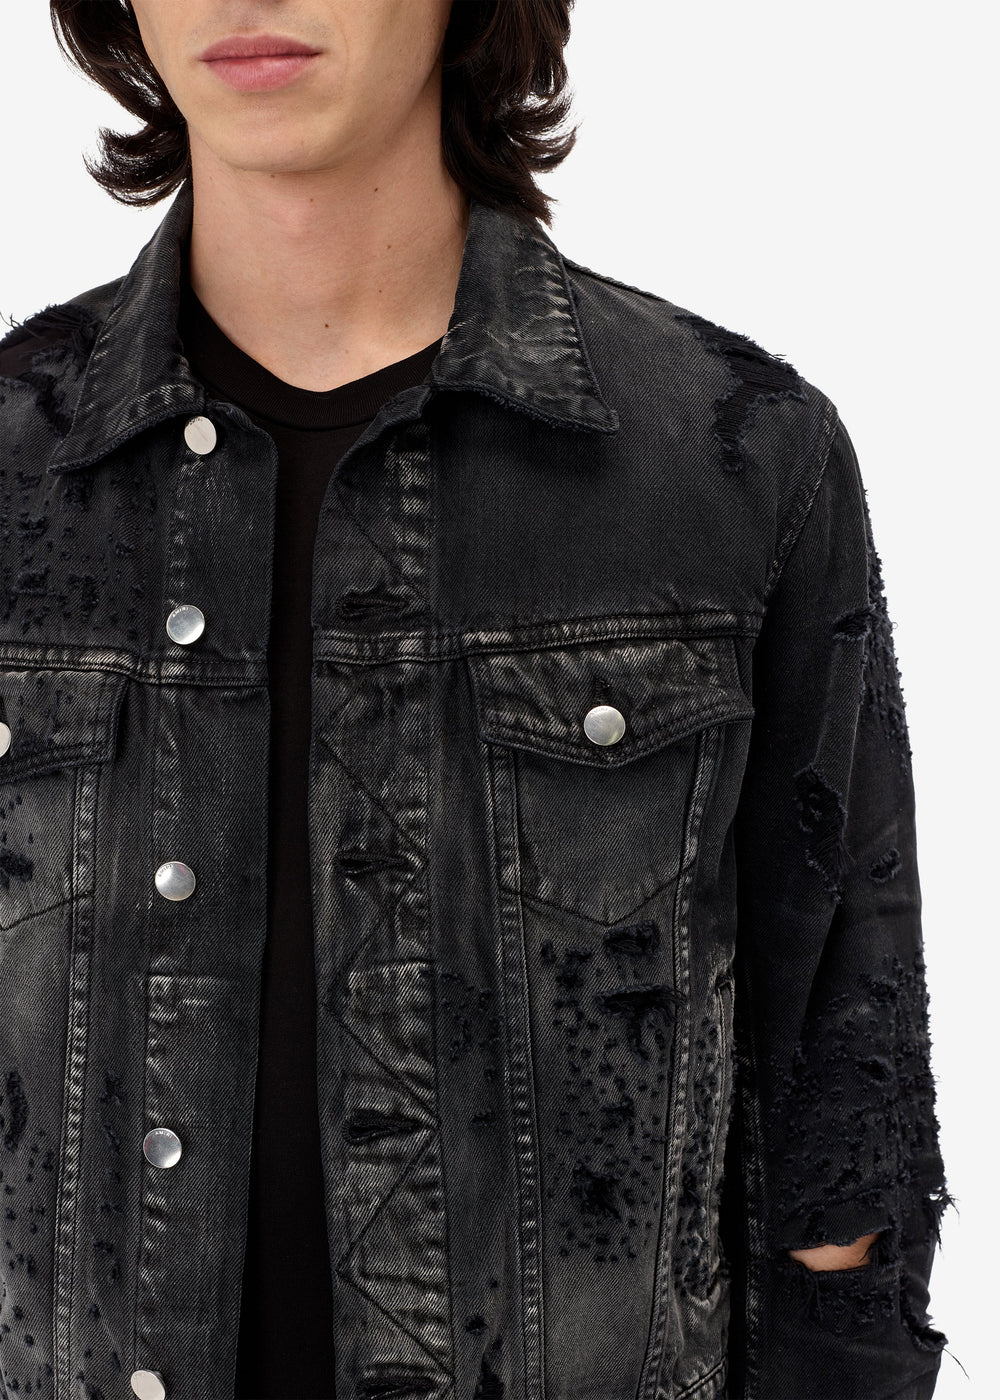 Shotgun Trucker Jacket - Antique Black